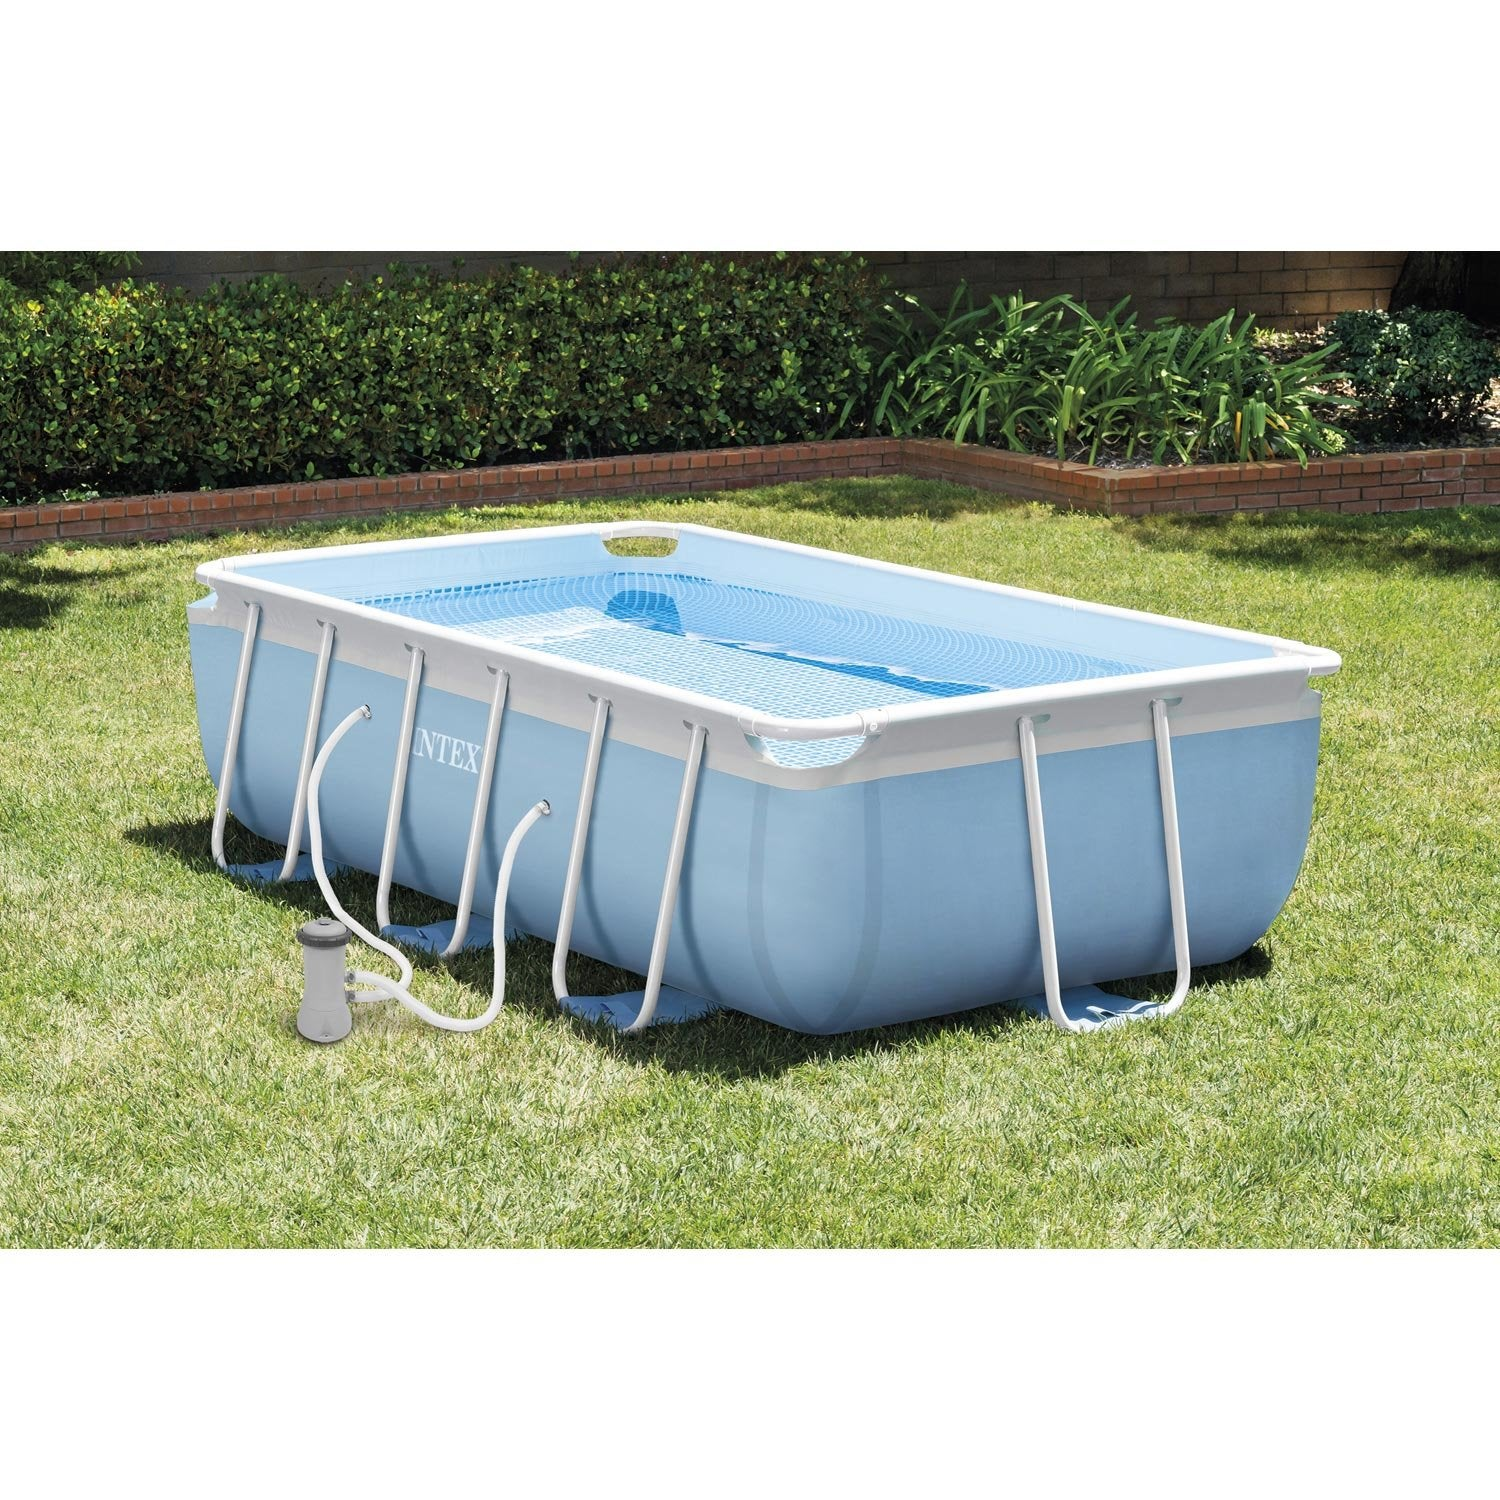 Piscine hors sol autoportante tubulaire intex l 3 4 x l 2 for Piscine gonflable 2m